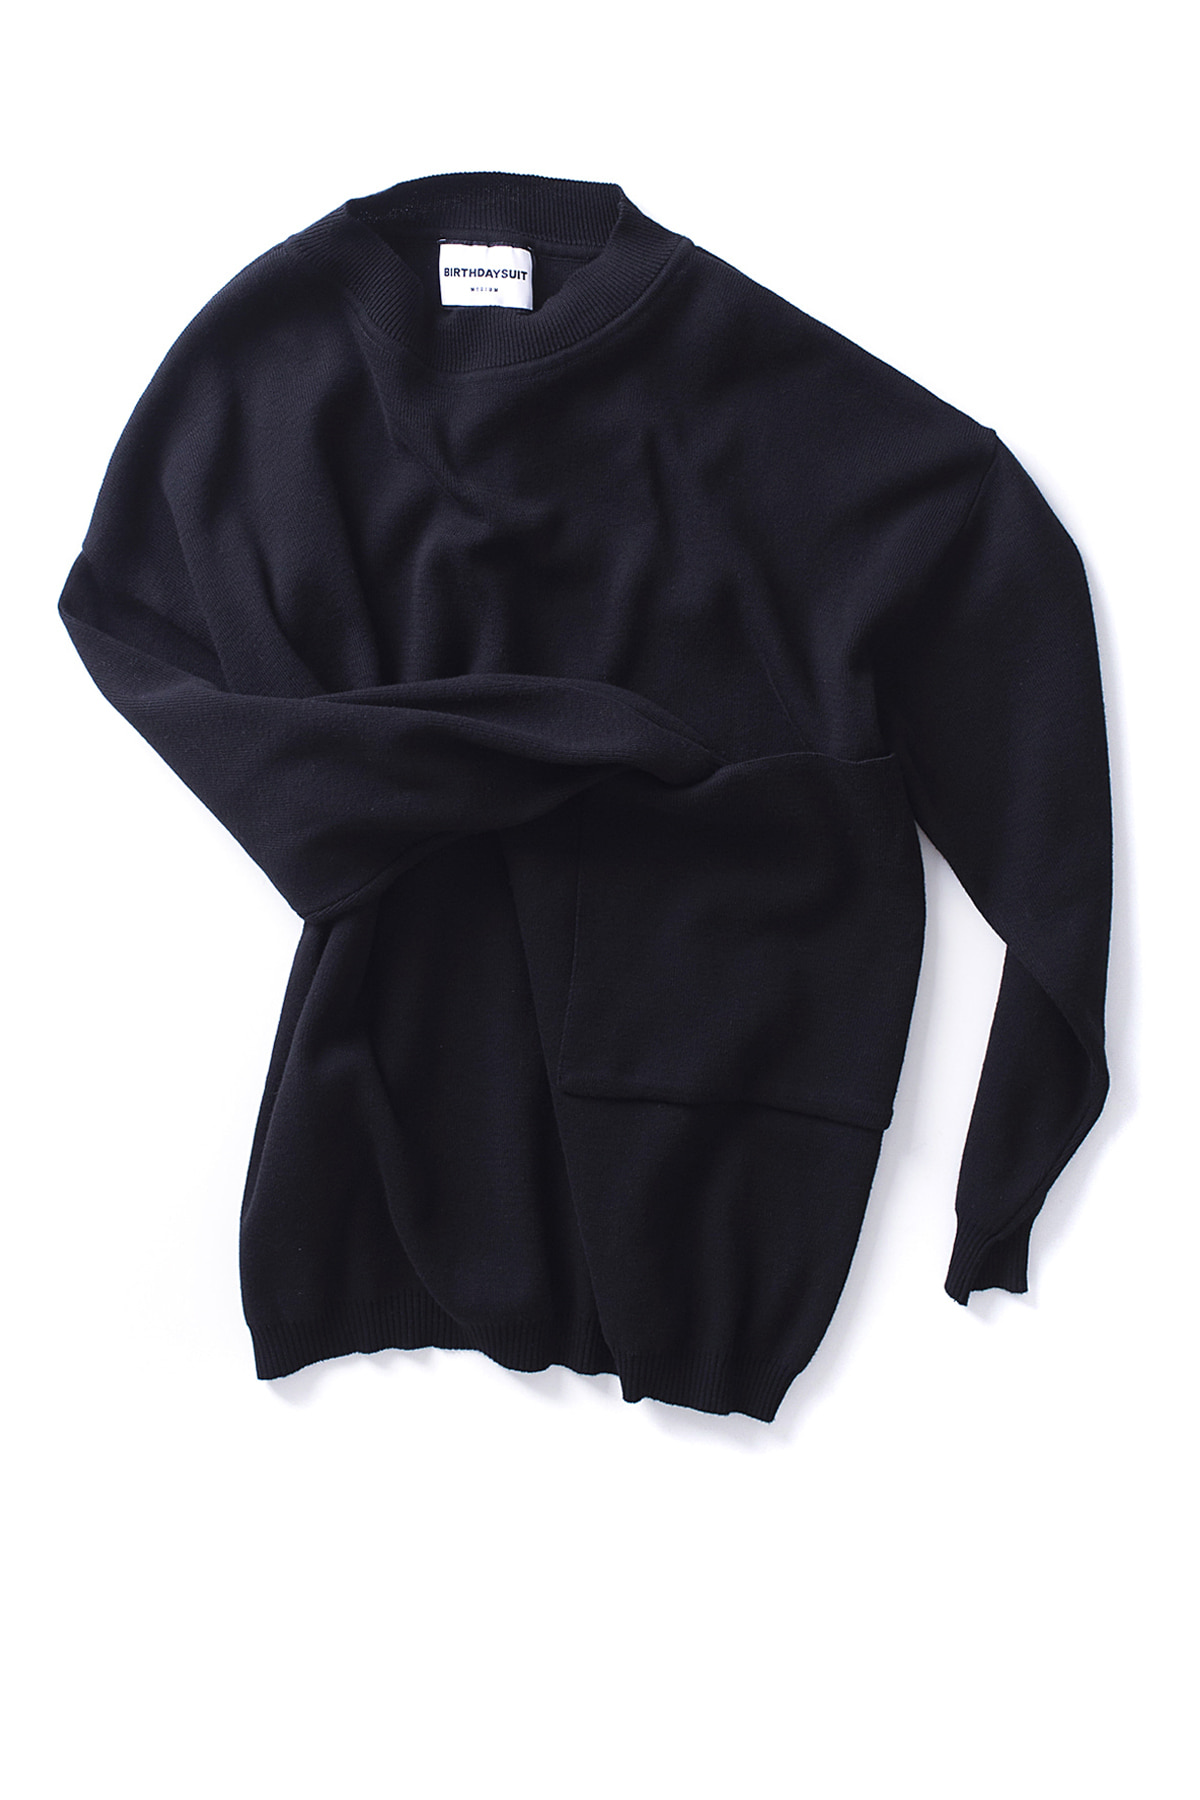 BIRTHDAYSUIT : Big Pocket Knit Pullover (Black)